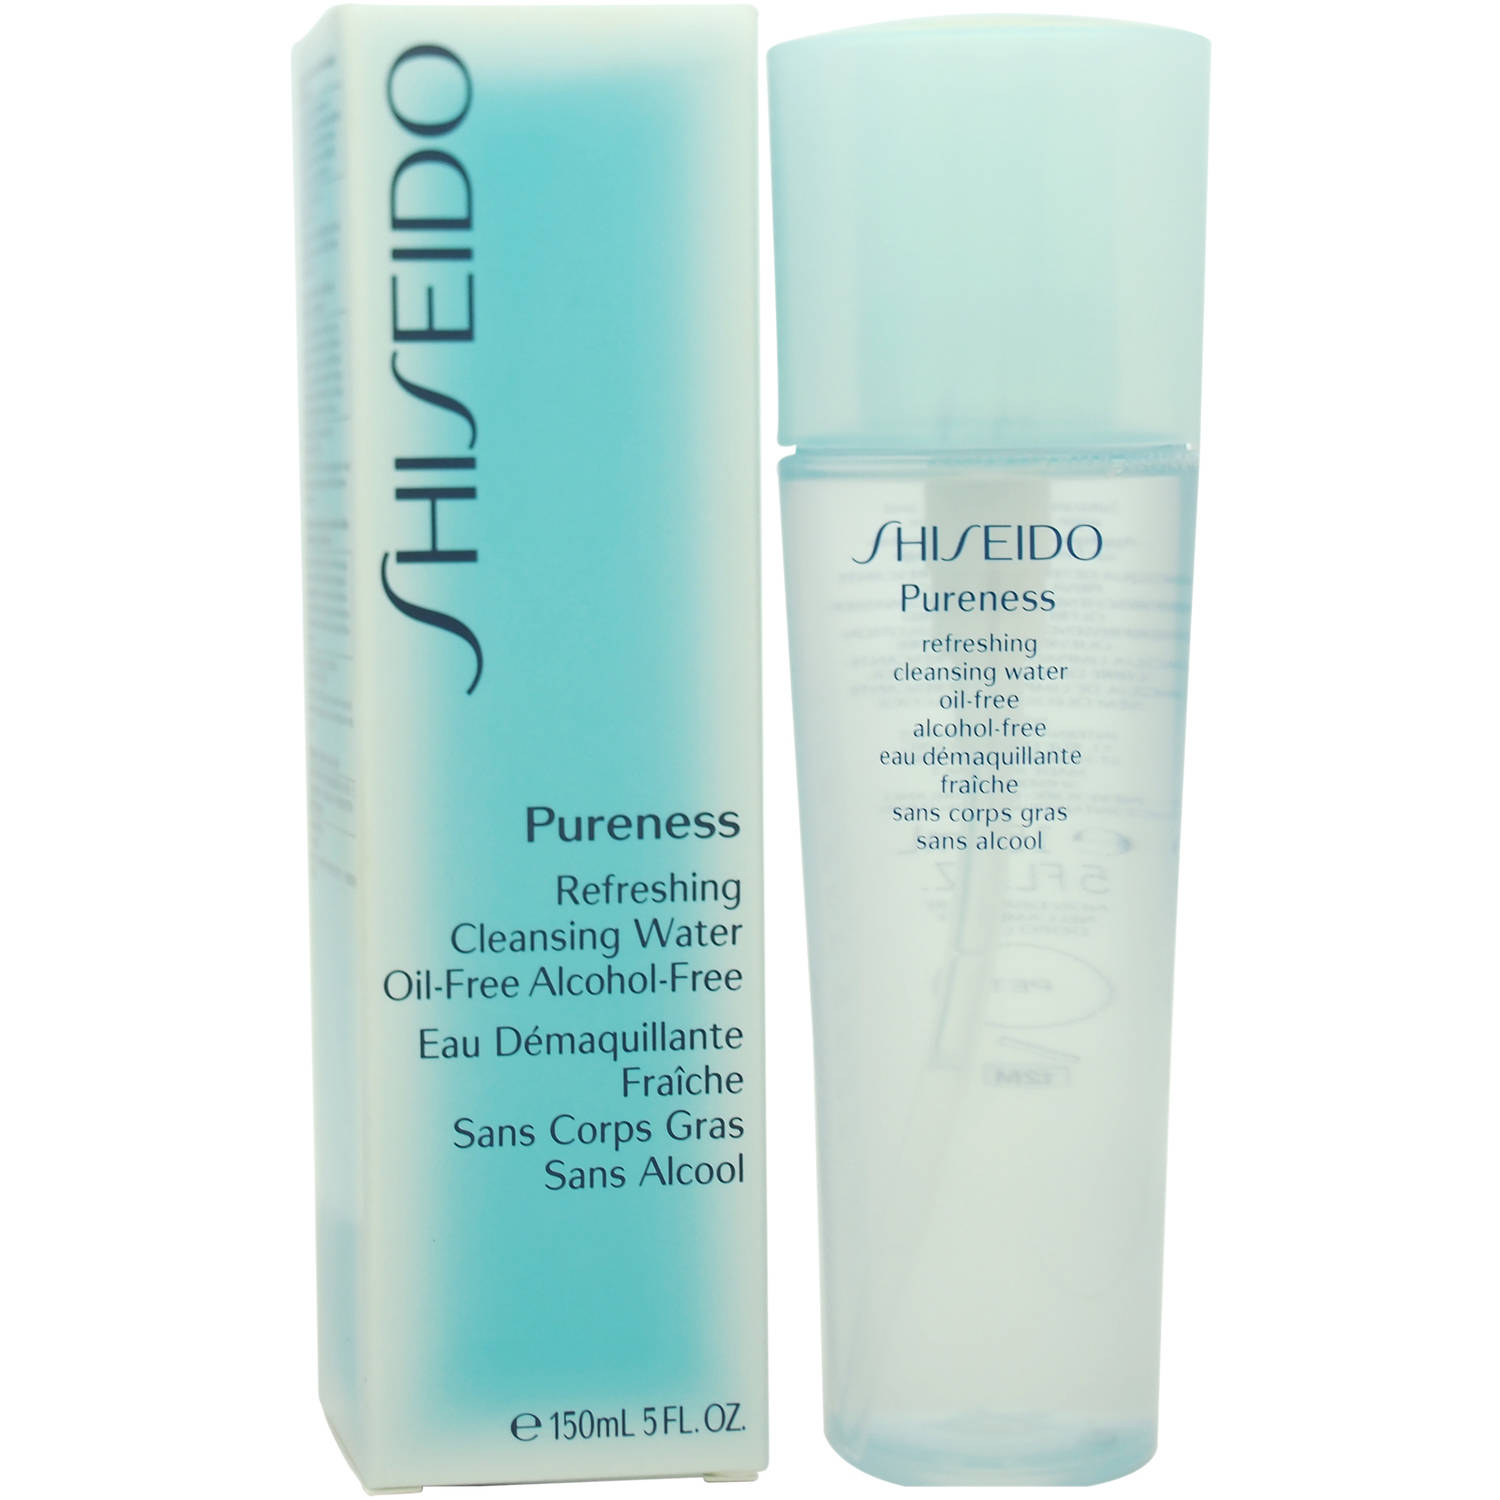 Pureness Refreshing Cleansing Water Oil-Free by Shiseido for Unisex Cleansing Water, 5 oz